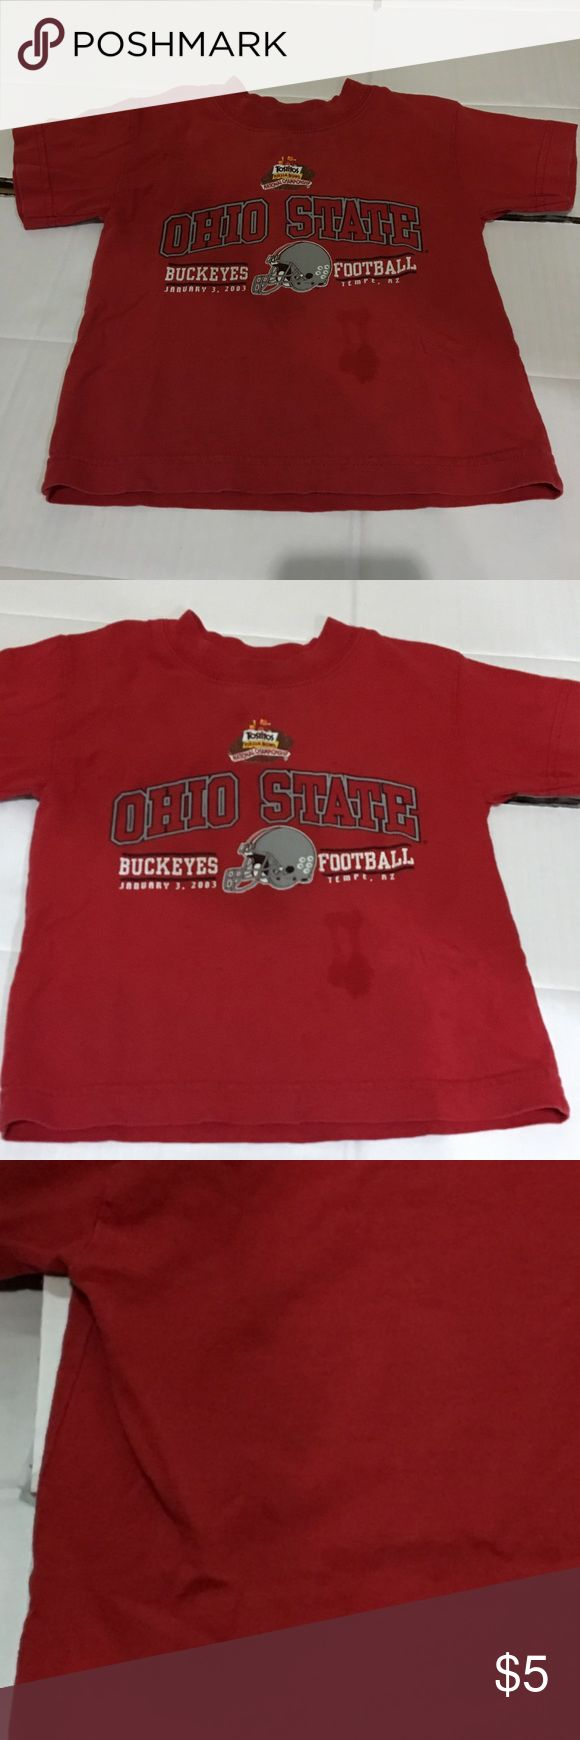 Ohio State National Championship T-Shirt 2003 Fiesta Bowl National Championship T-Shirt Size 4, has a stain under the graphic Minor, unnoticeable stain on the back See pictures Bundle multiple items and pay for shipping once Ohio State Shirts & Tops Tees - Short Sleeve